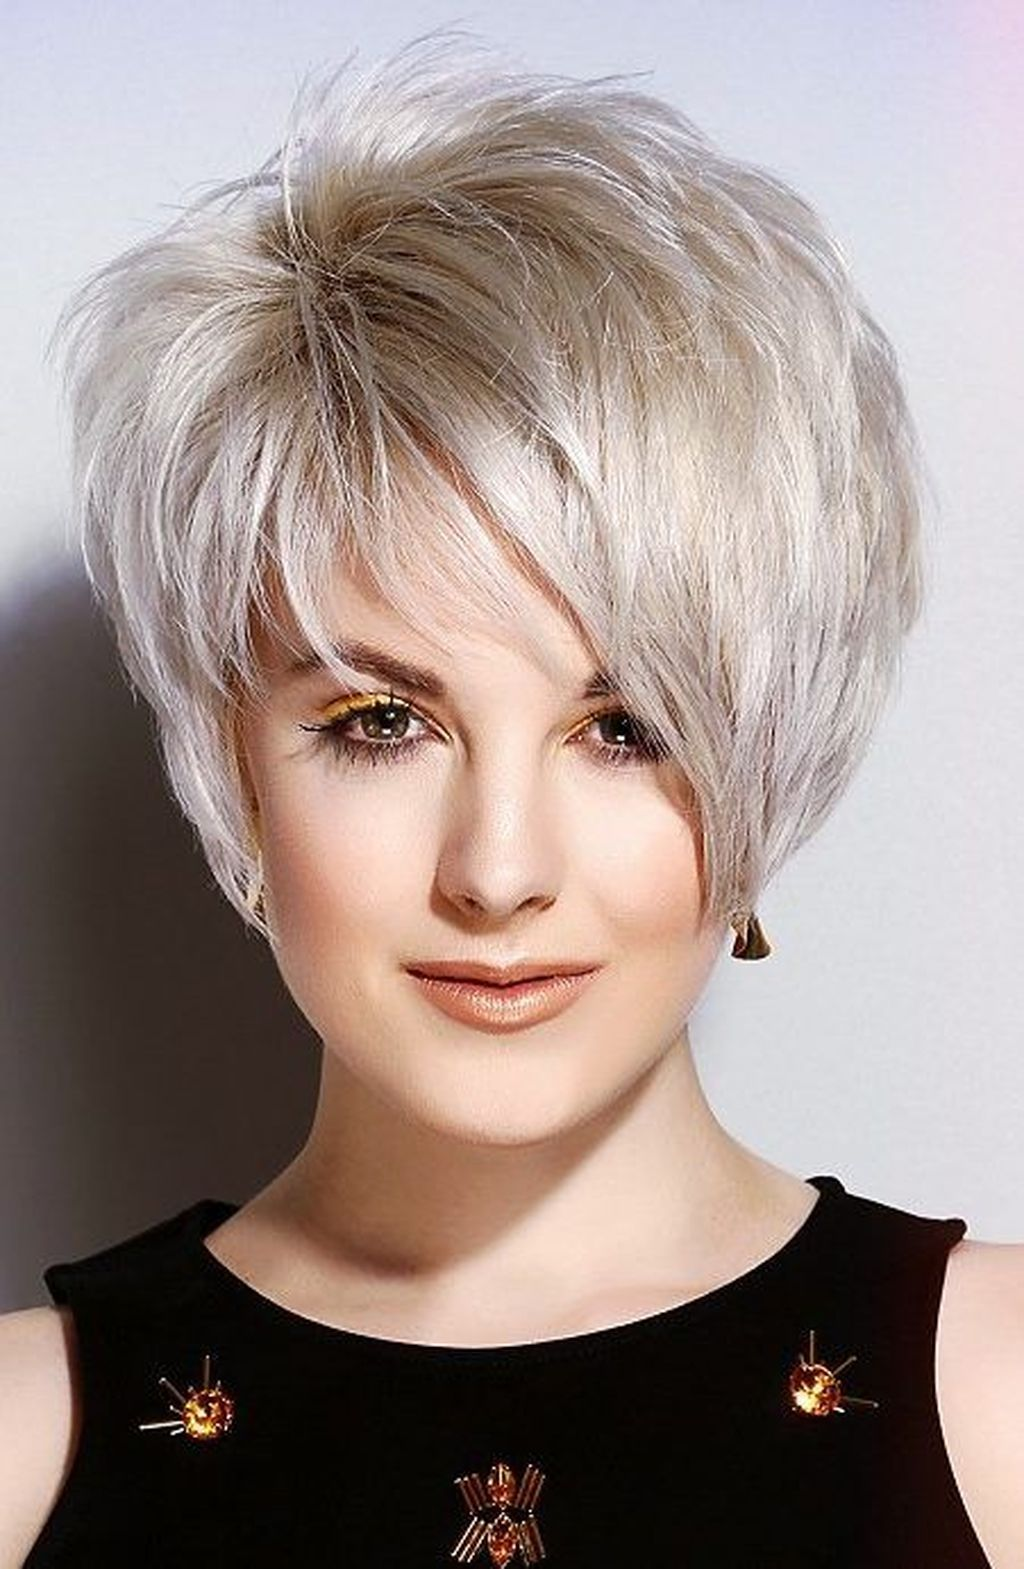 43 splendid short layered hairstyles ideas for women to